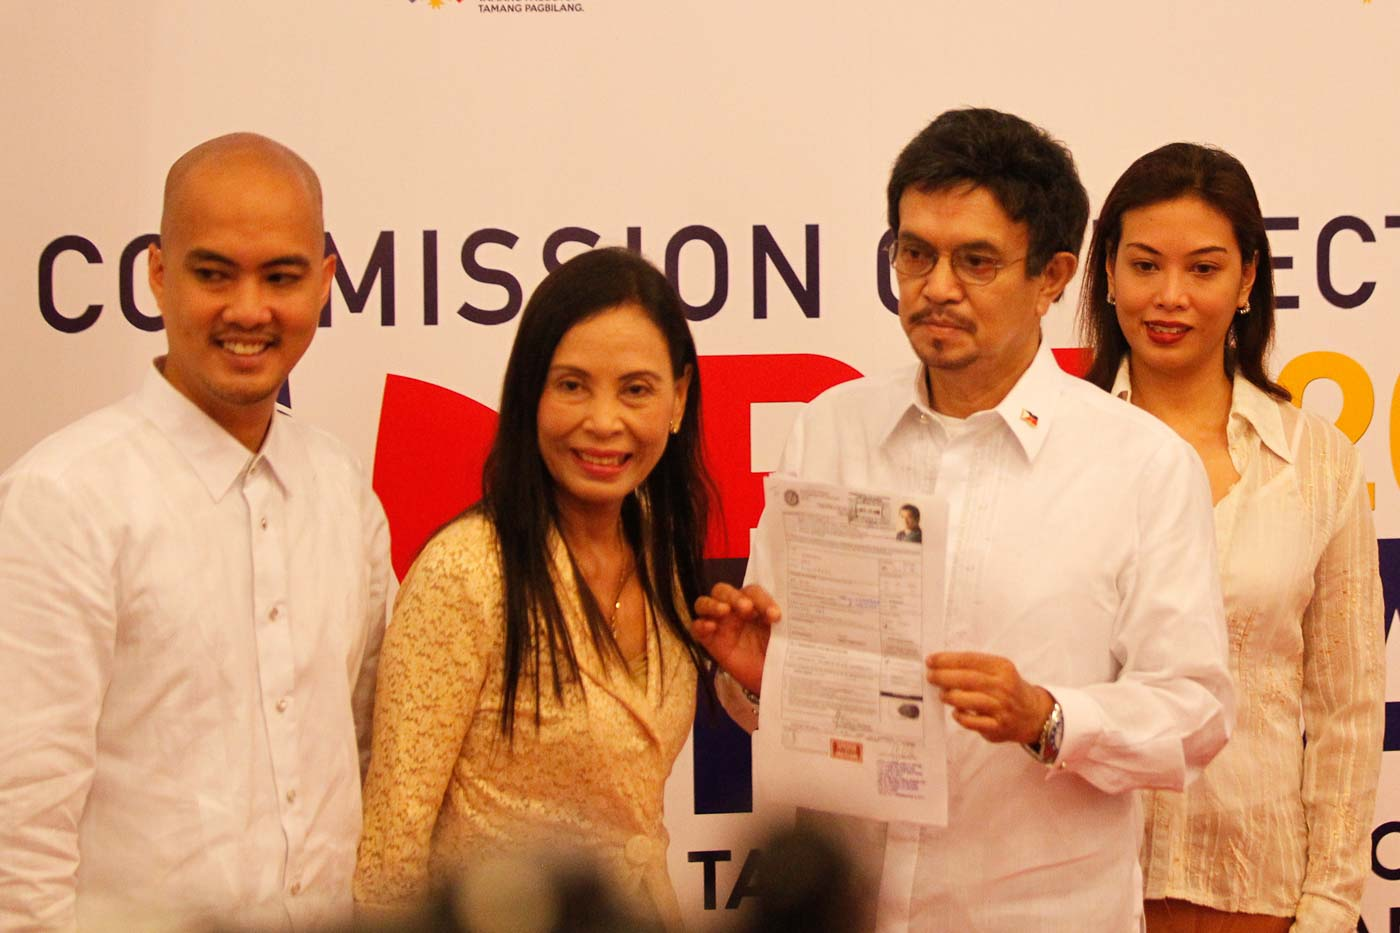 THEN-ASPIRANT. In October 2015, party-list representative Roy Seu00f1eres filed his certificate of candidacy for president. File photo by Czeasar Dancel/Rappler